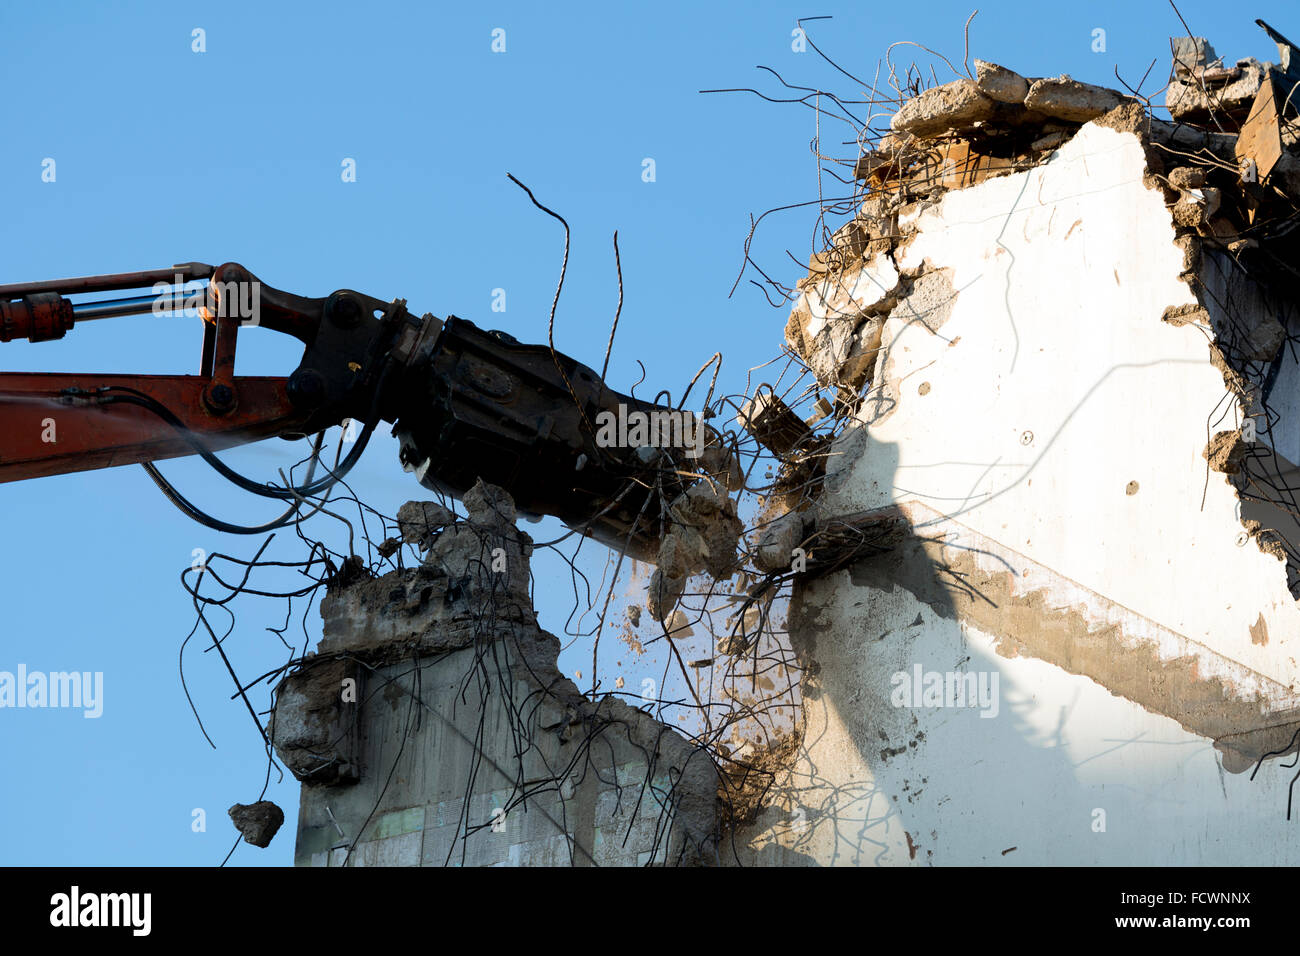 Demolition of former Royal Mail sorting office, Coventry city centre, UK - Stock Image